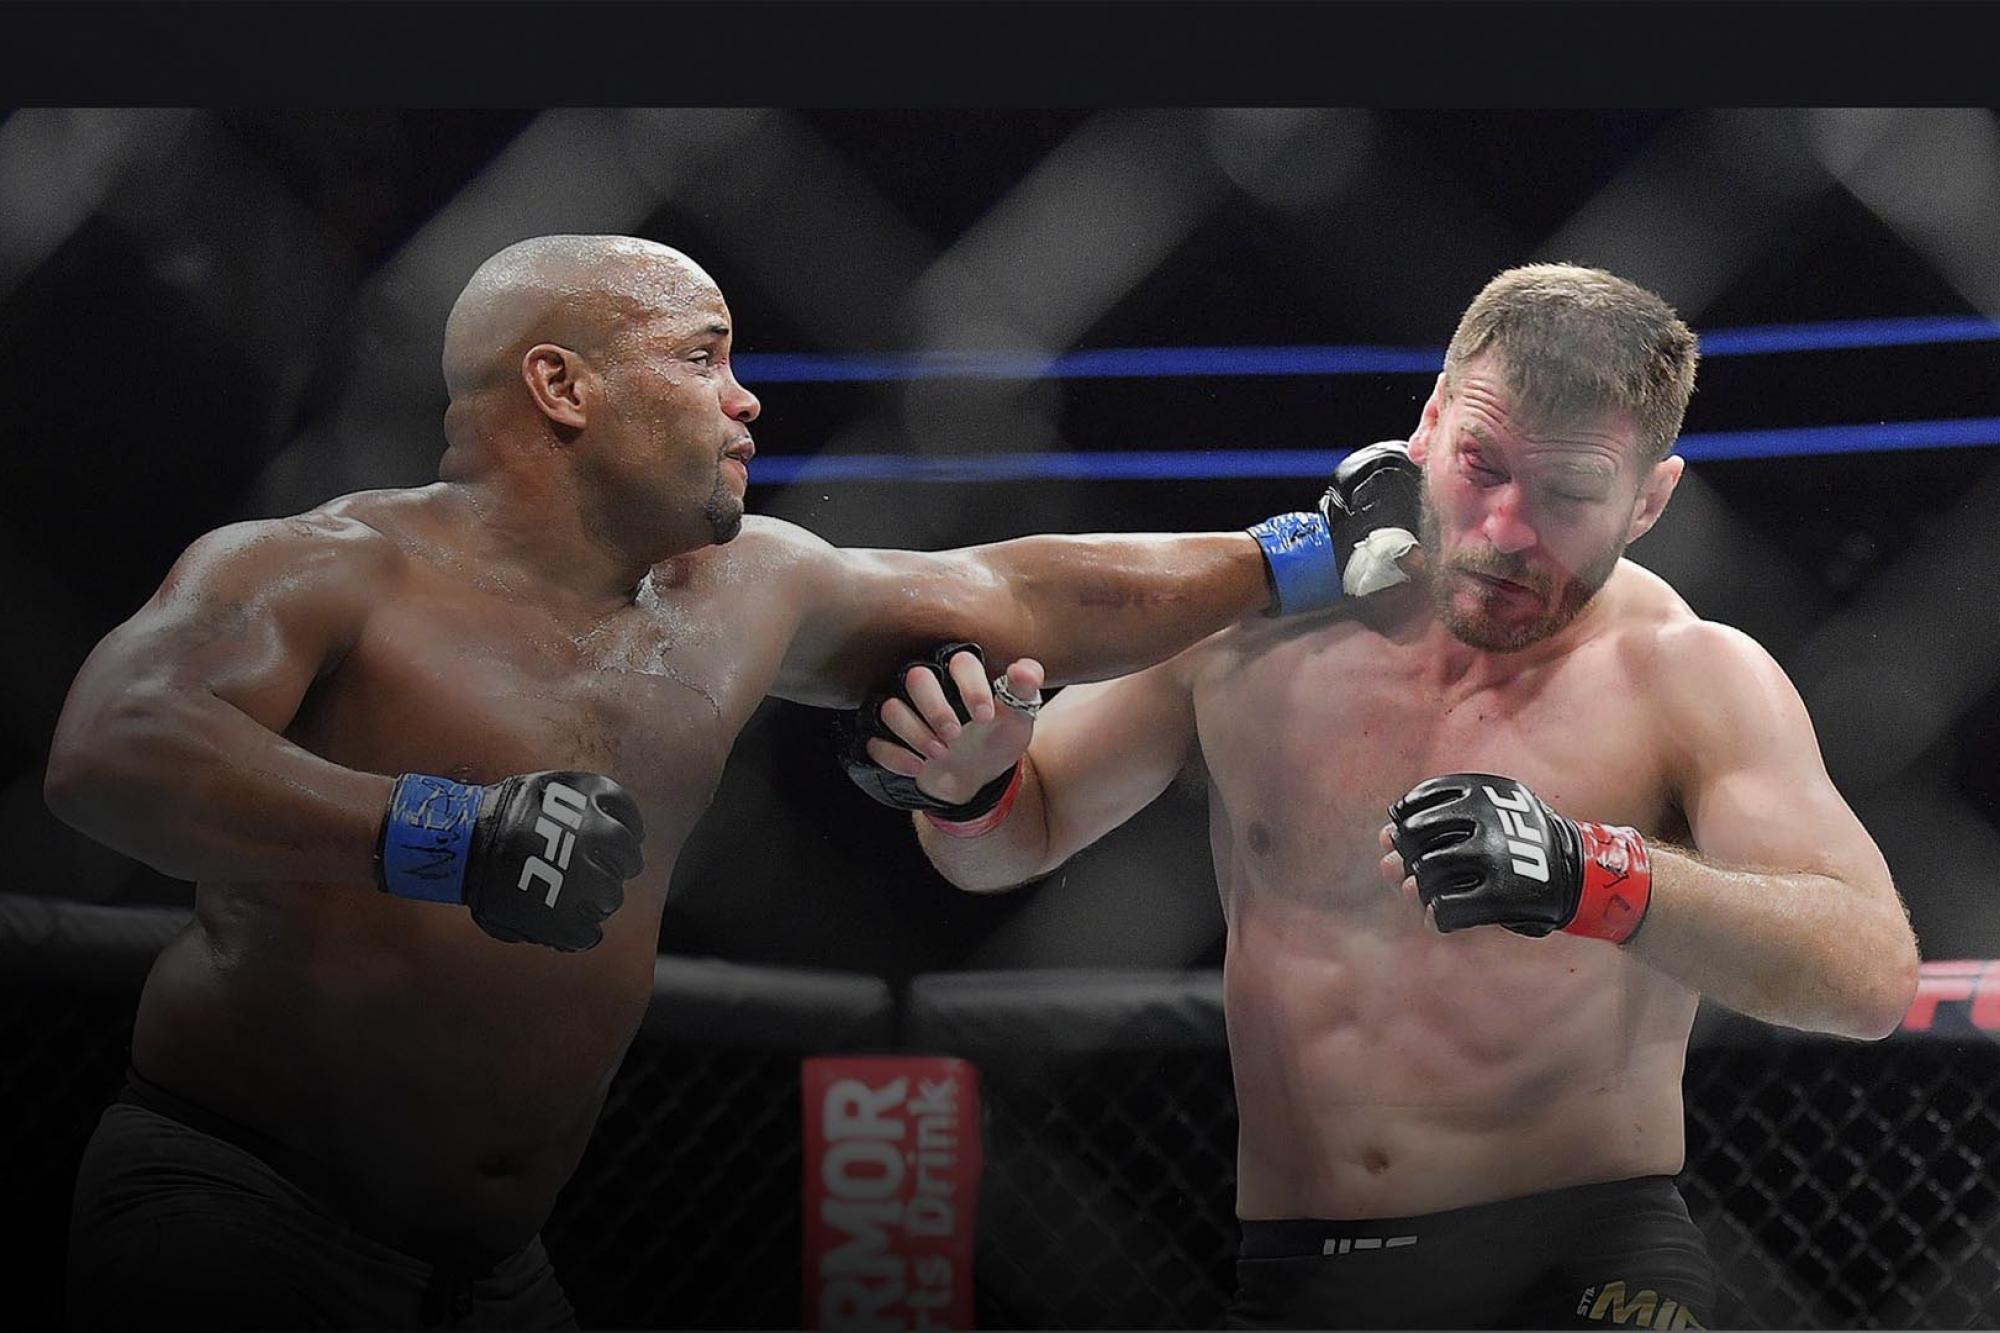 cheap prices 50% off pretty cheap UFC 241 Fight by Fight | UFC